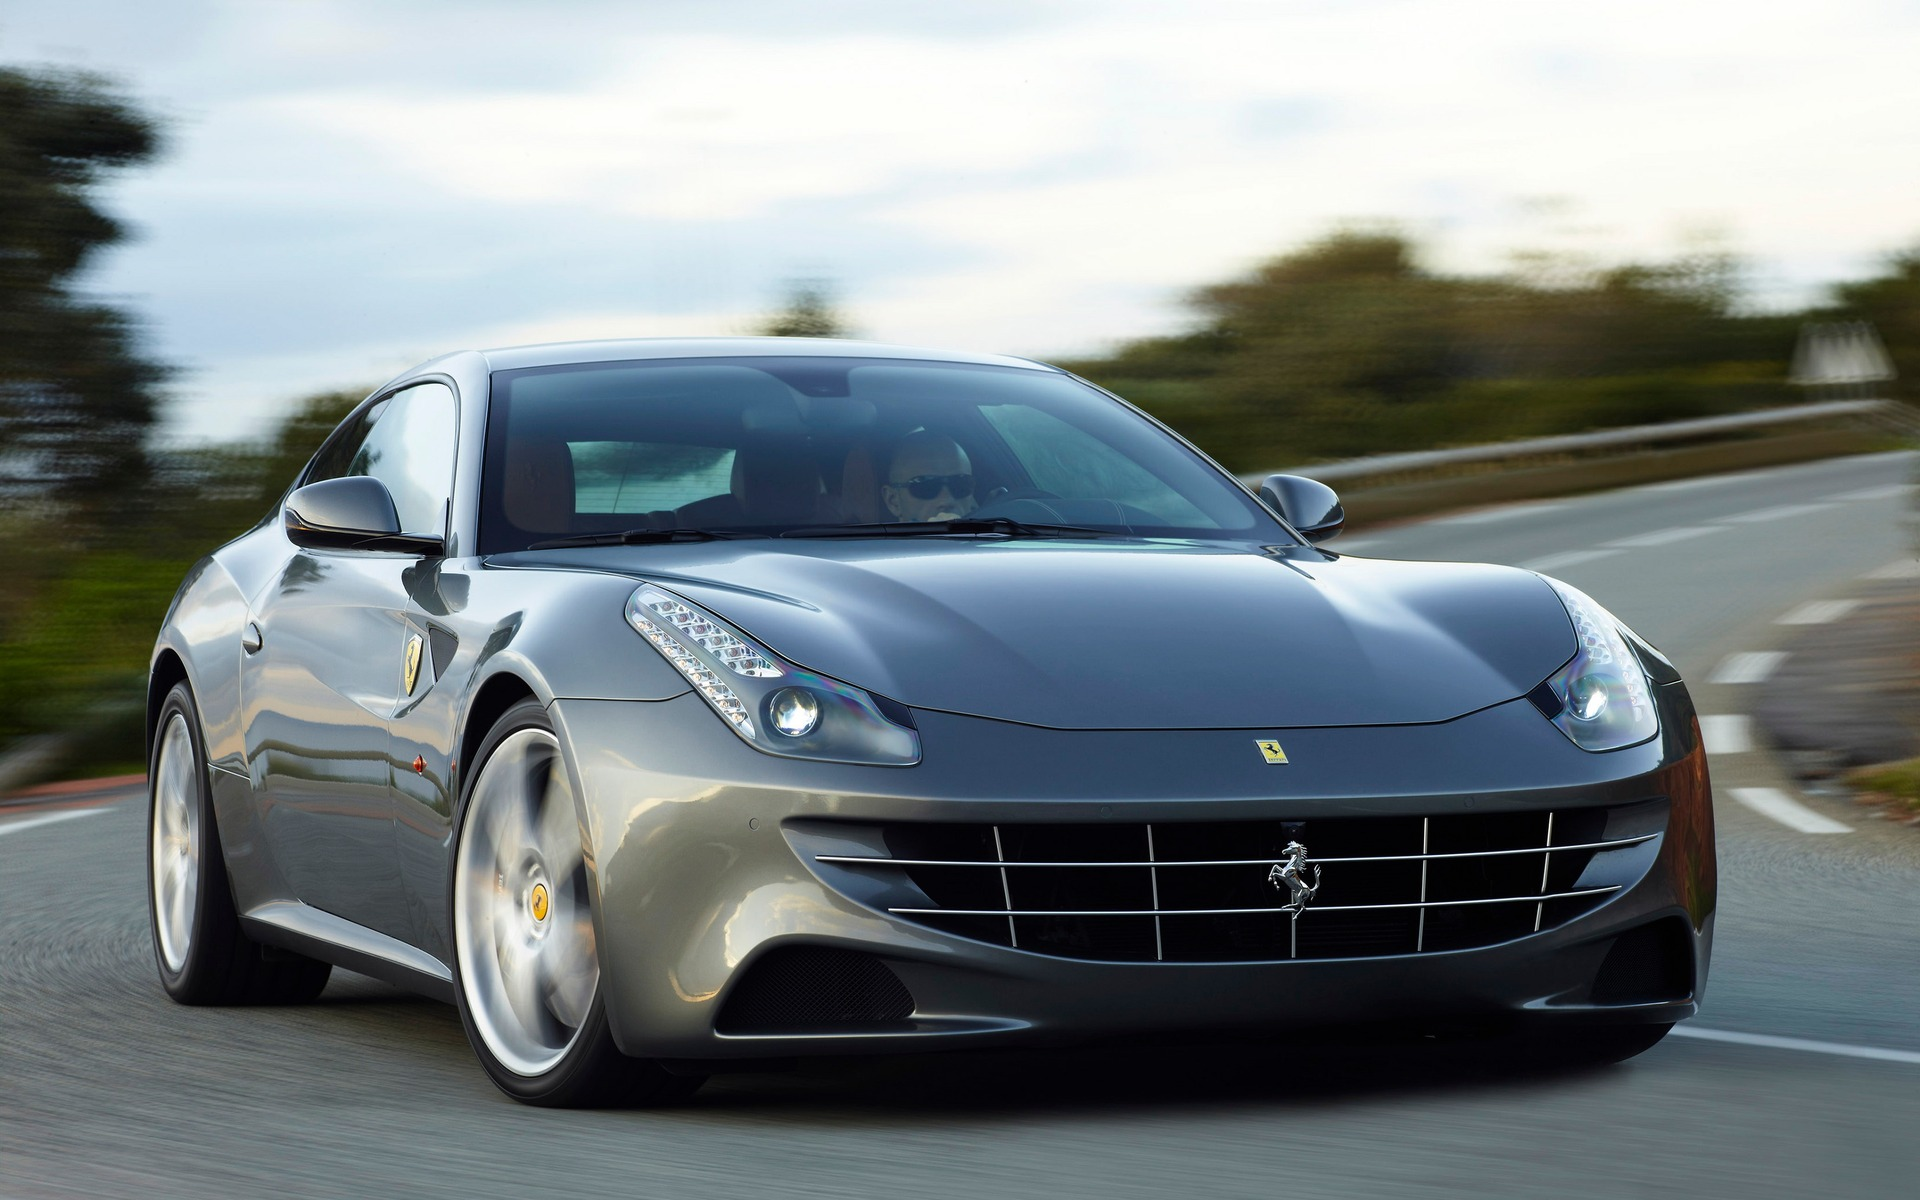 2016 ferrari ff - news, reviews, picture galleries and videos